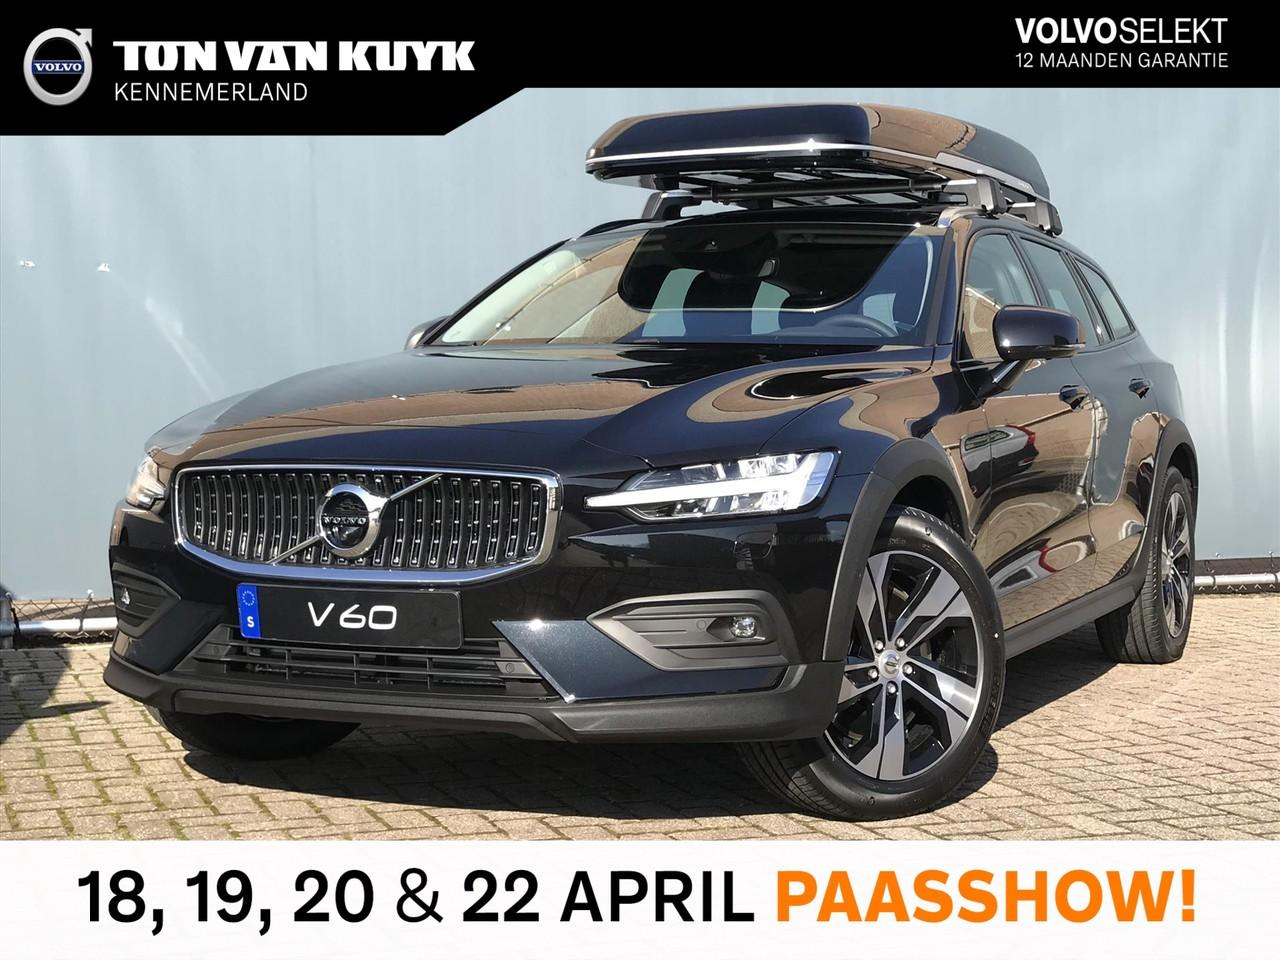 Volvo V60 cross country New d4 awd geartronic intro edition € 5000,- extra inruilpremie